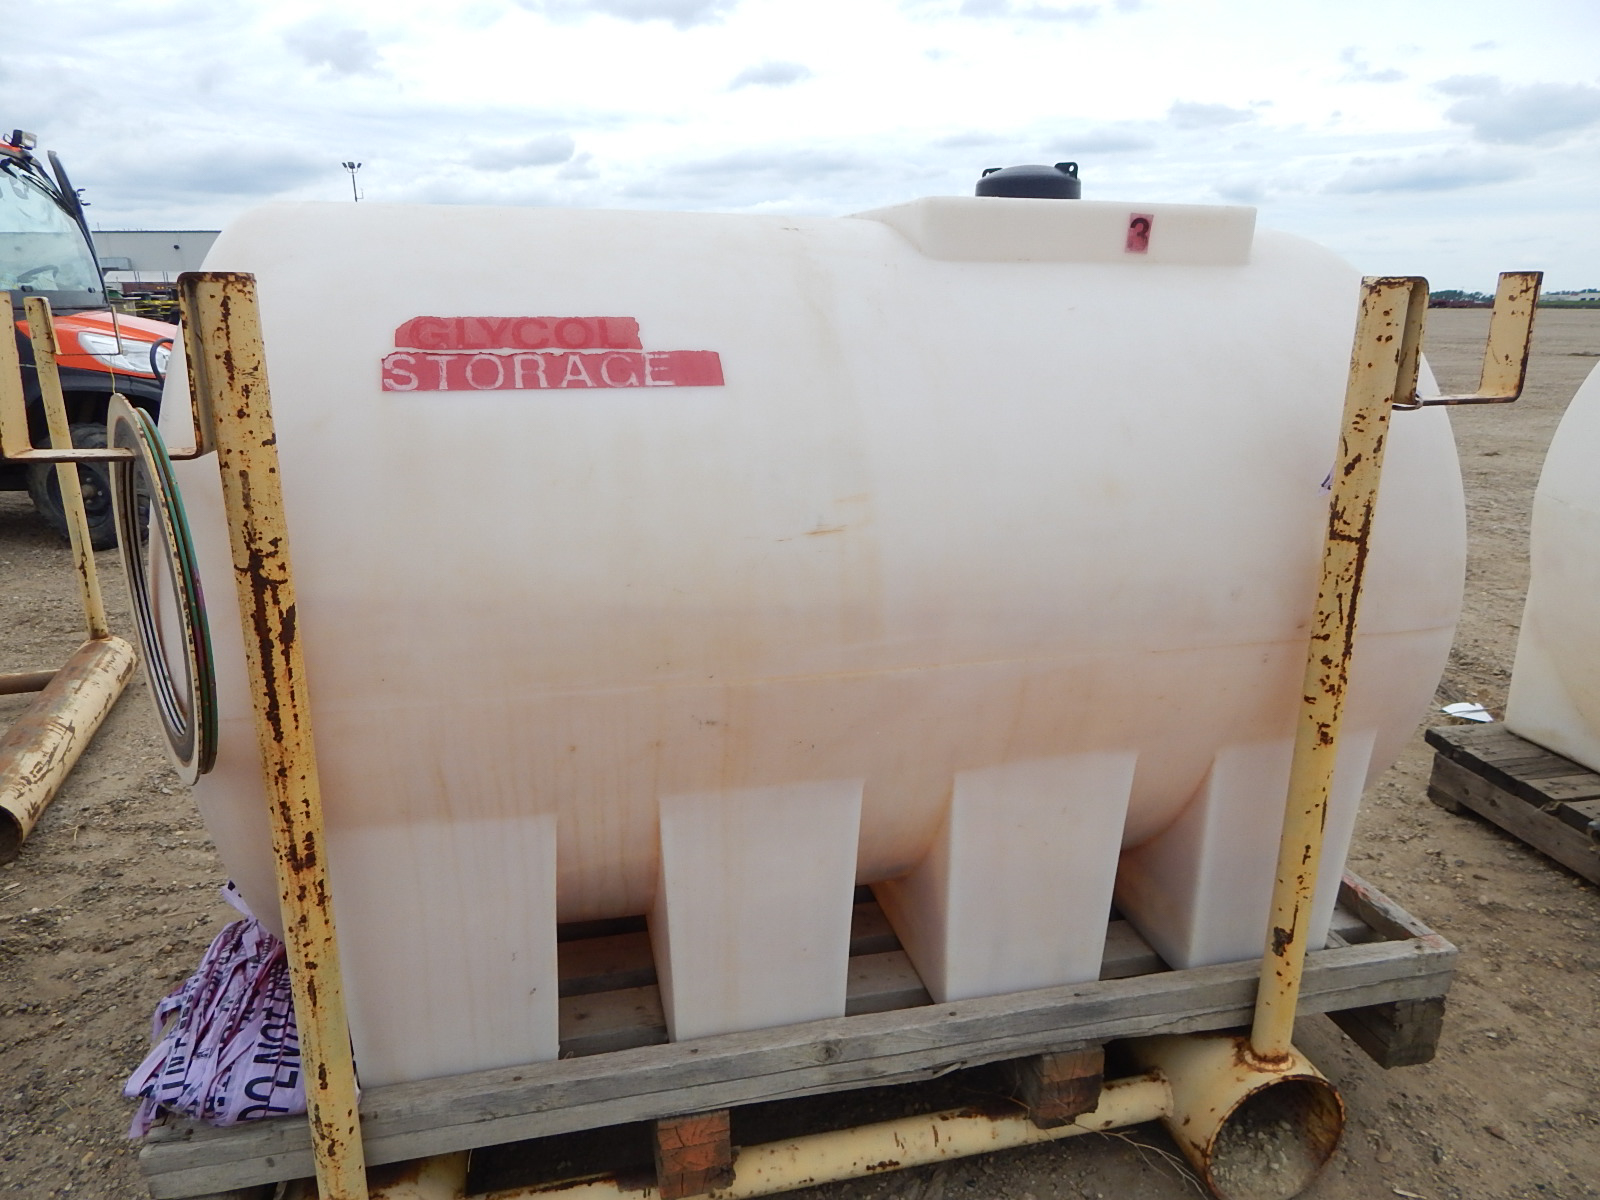 LIQUID STORAGE TANK WITH APPROX. 300GALLON CAPACITY, S/N: N/A - Image 2 of 2